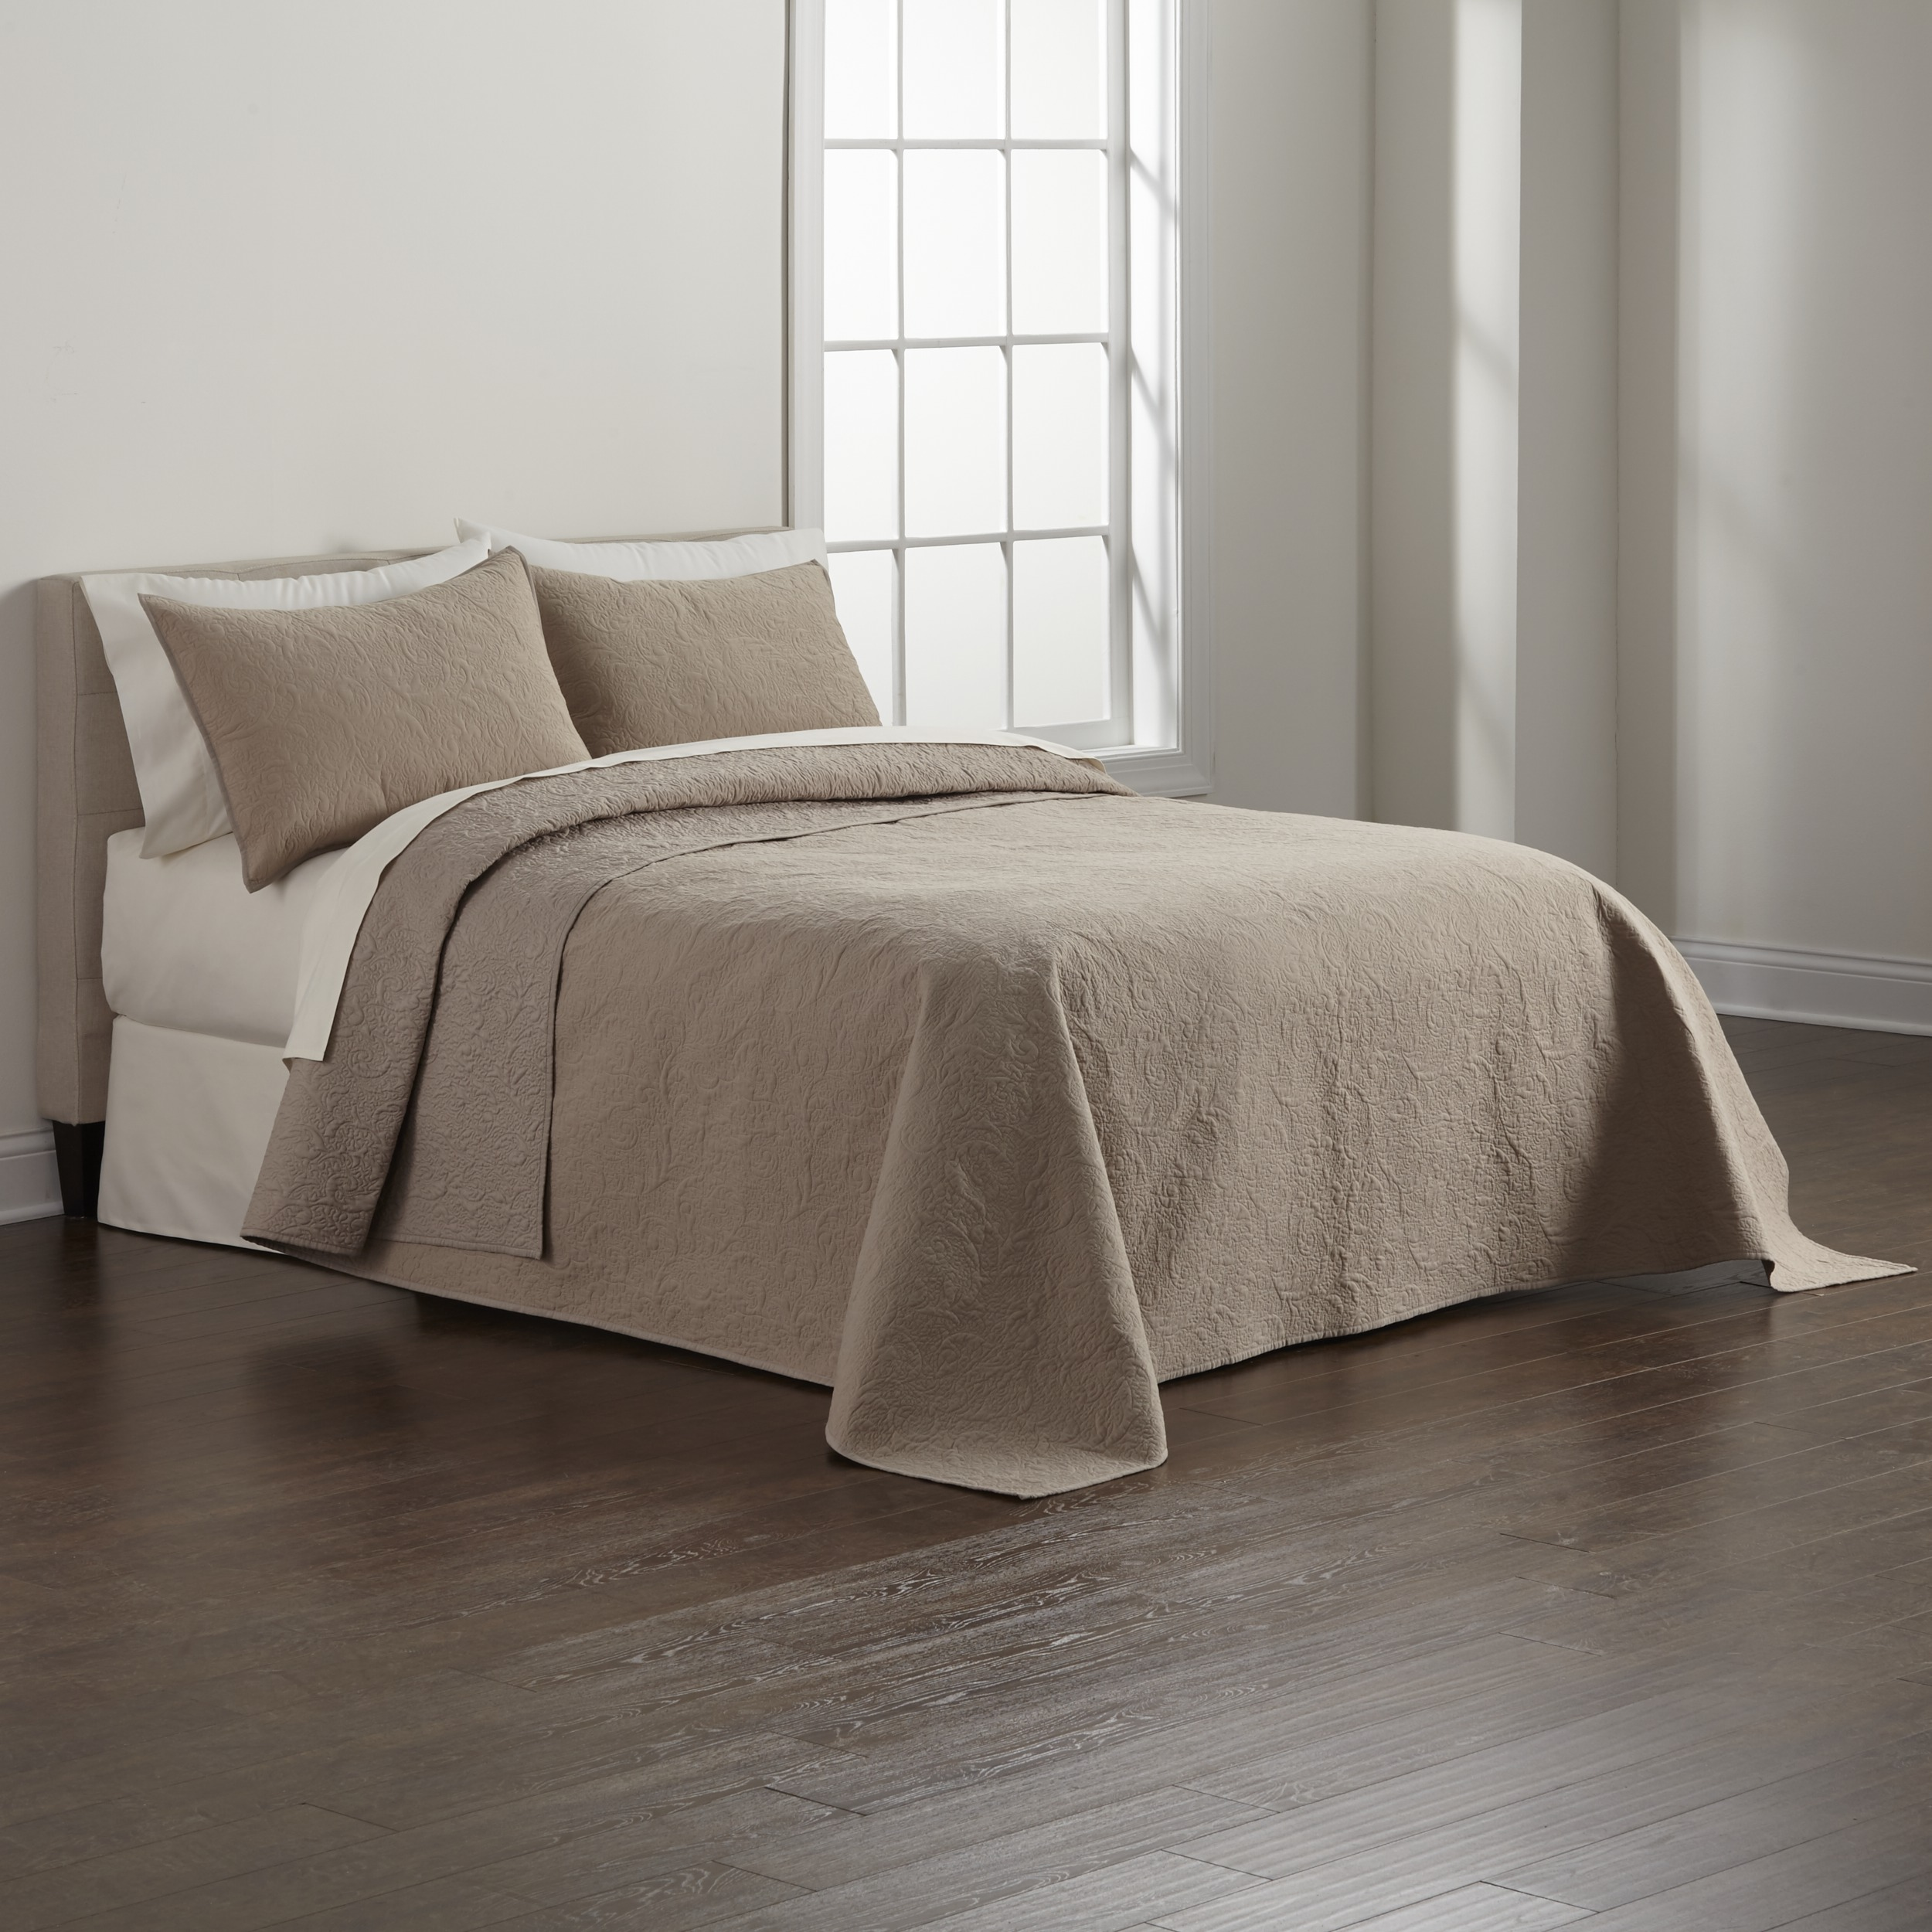 Queen Bedspreads | Wayfair Bedding | King Bedspread